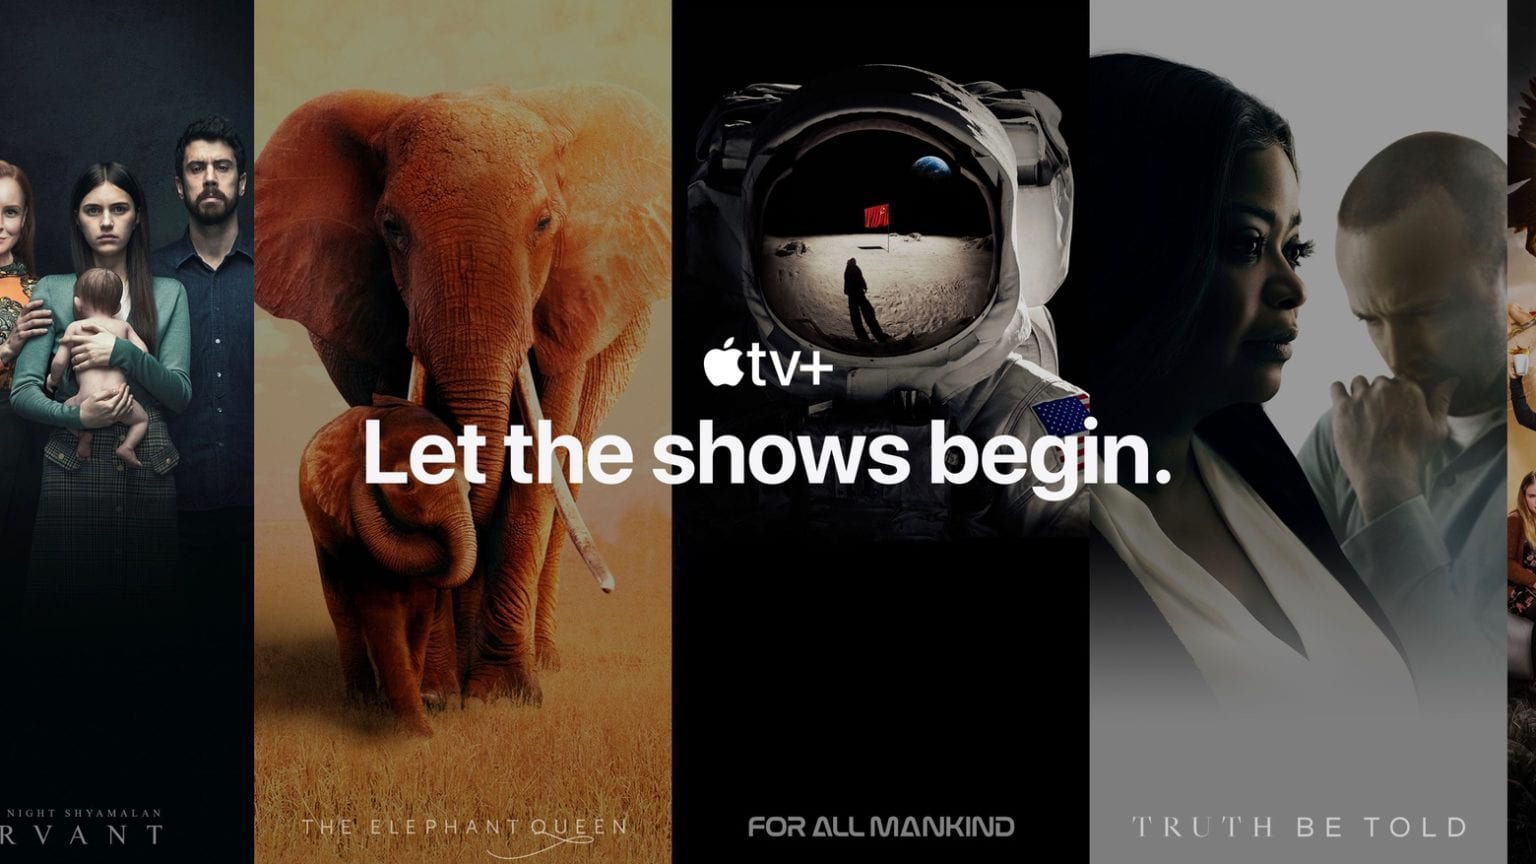 Apple TV+ has a growing amount of content